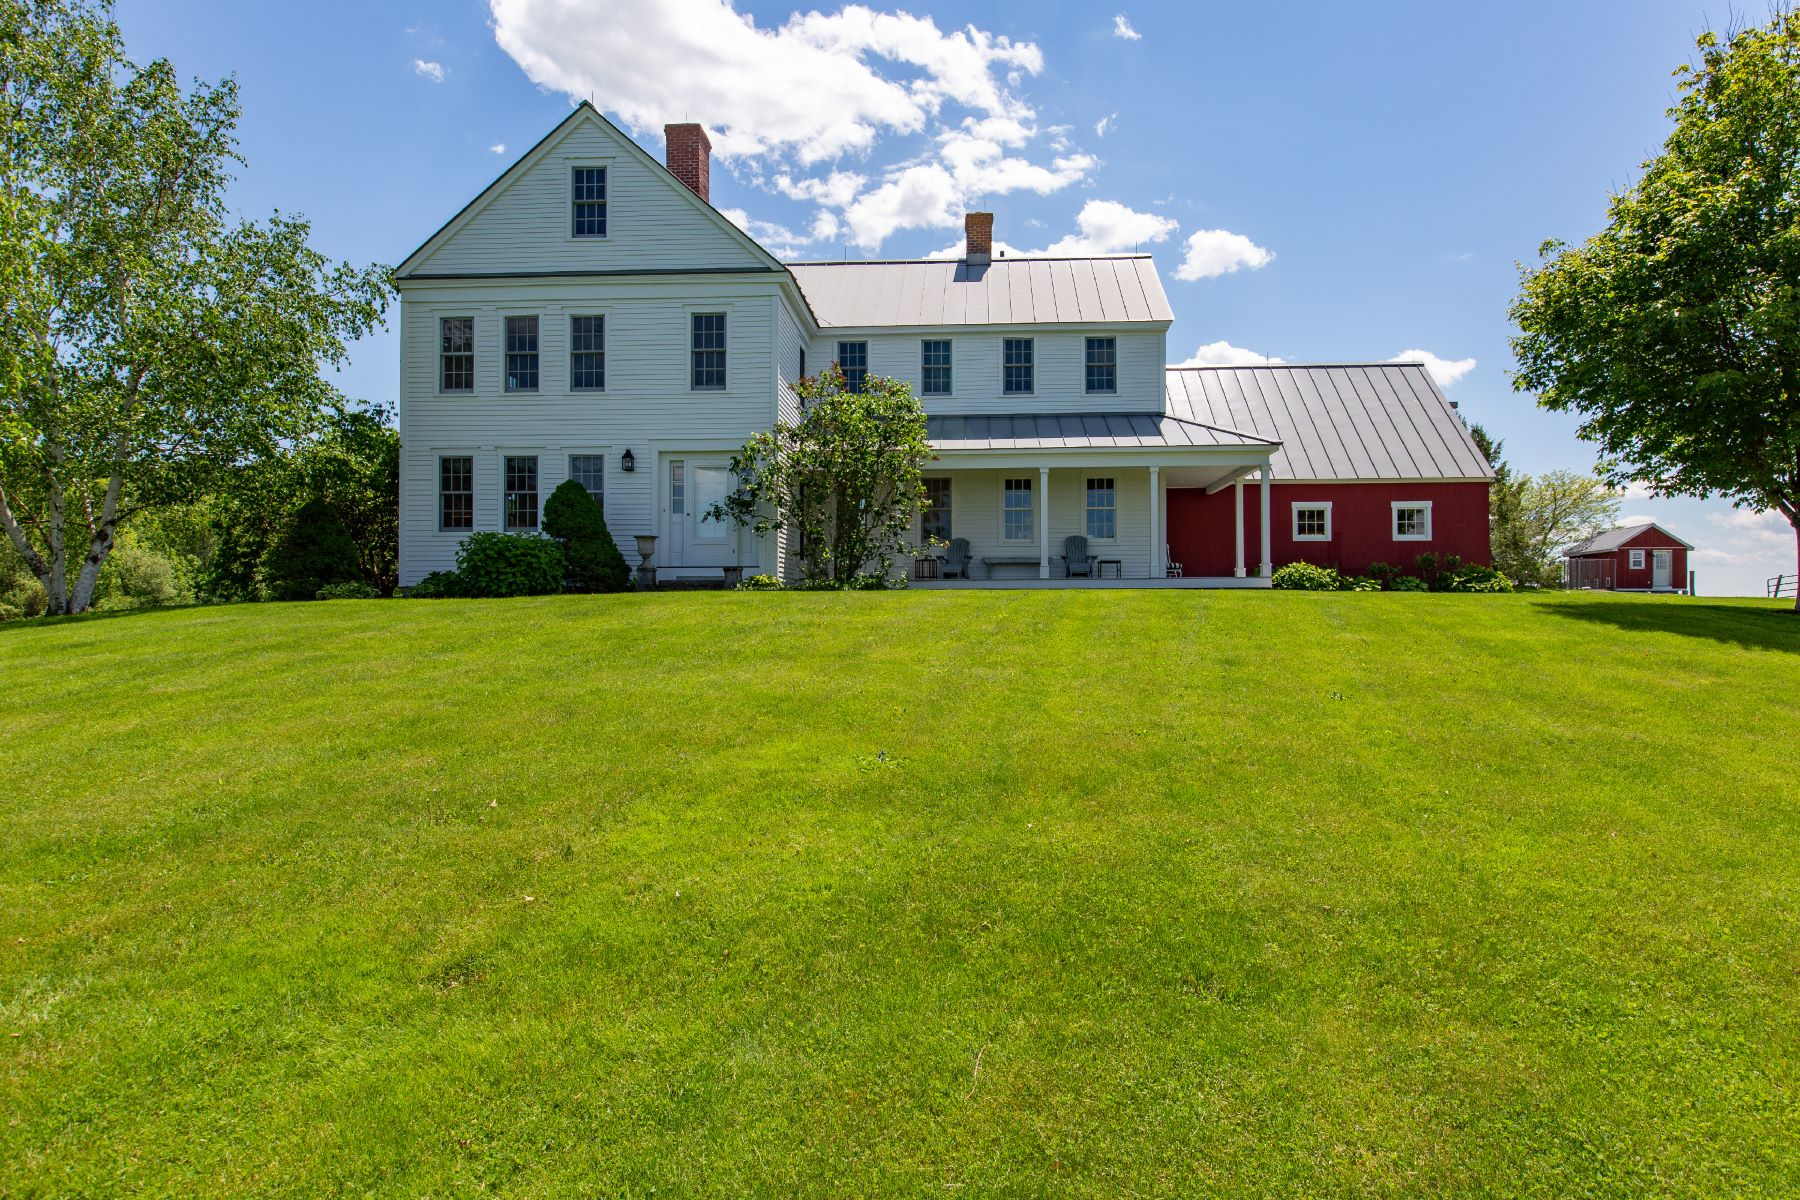 Single Family Homes for Sale at Summerfield Farm 236 Lang Hill Rd Granville, New York 12832 United States